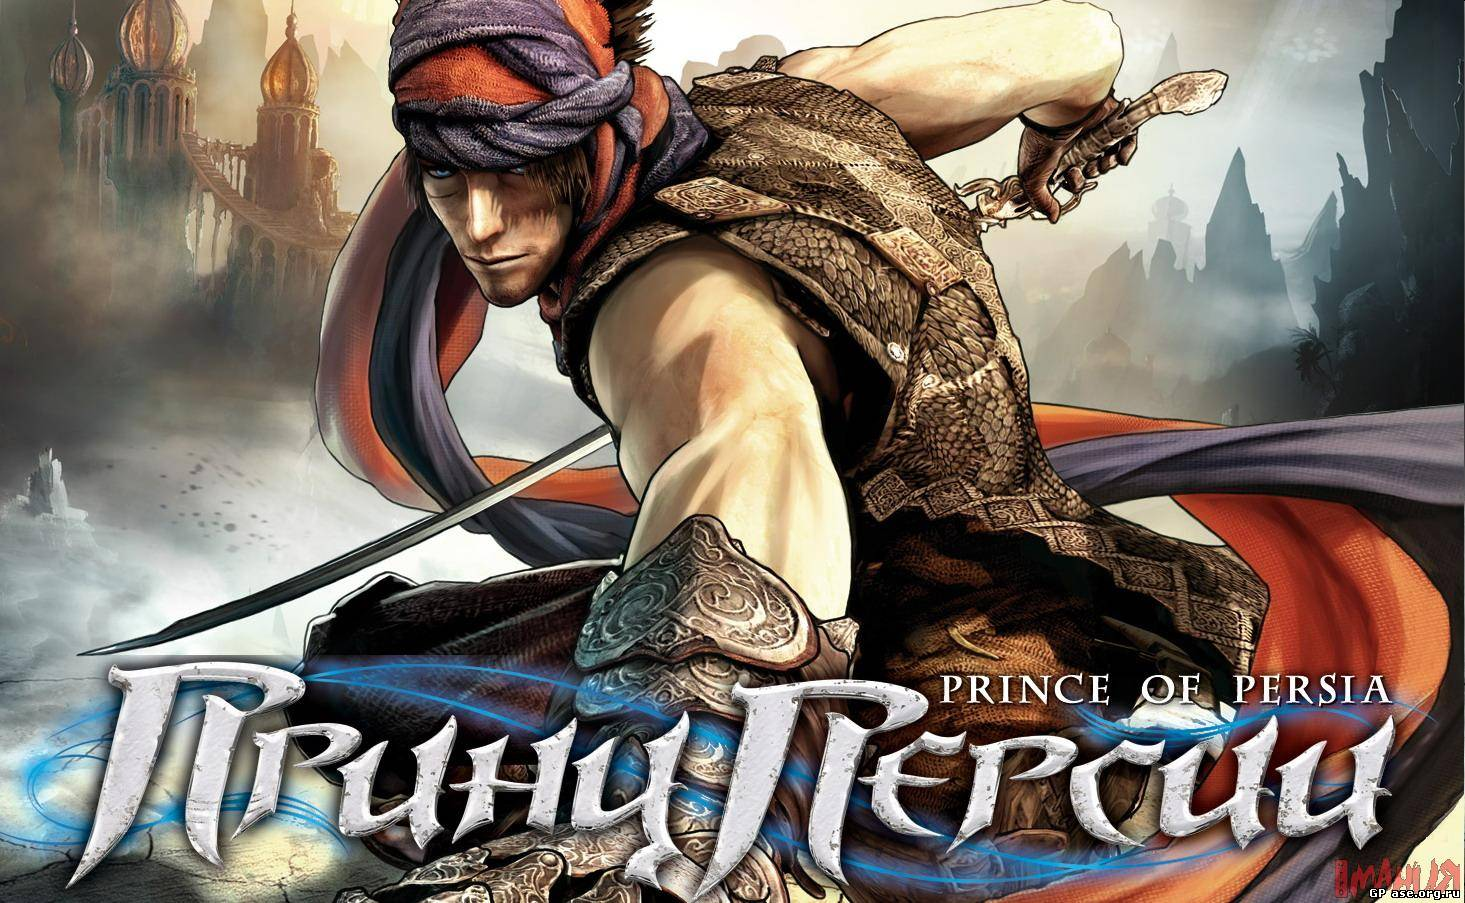 Prince of persia patch 2008 pc porn images